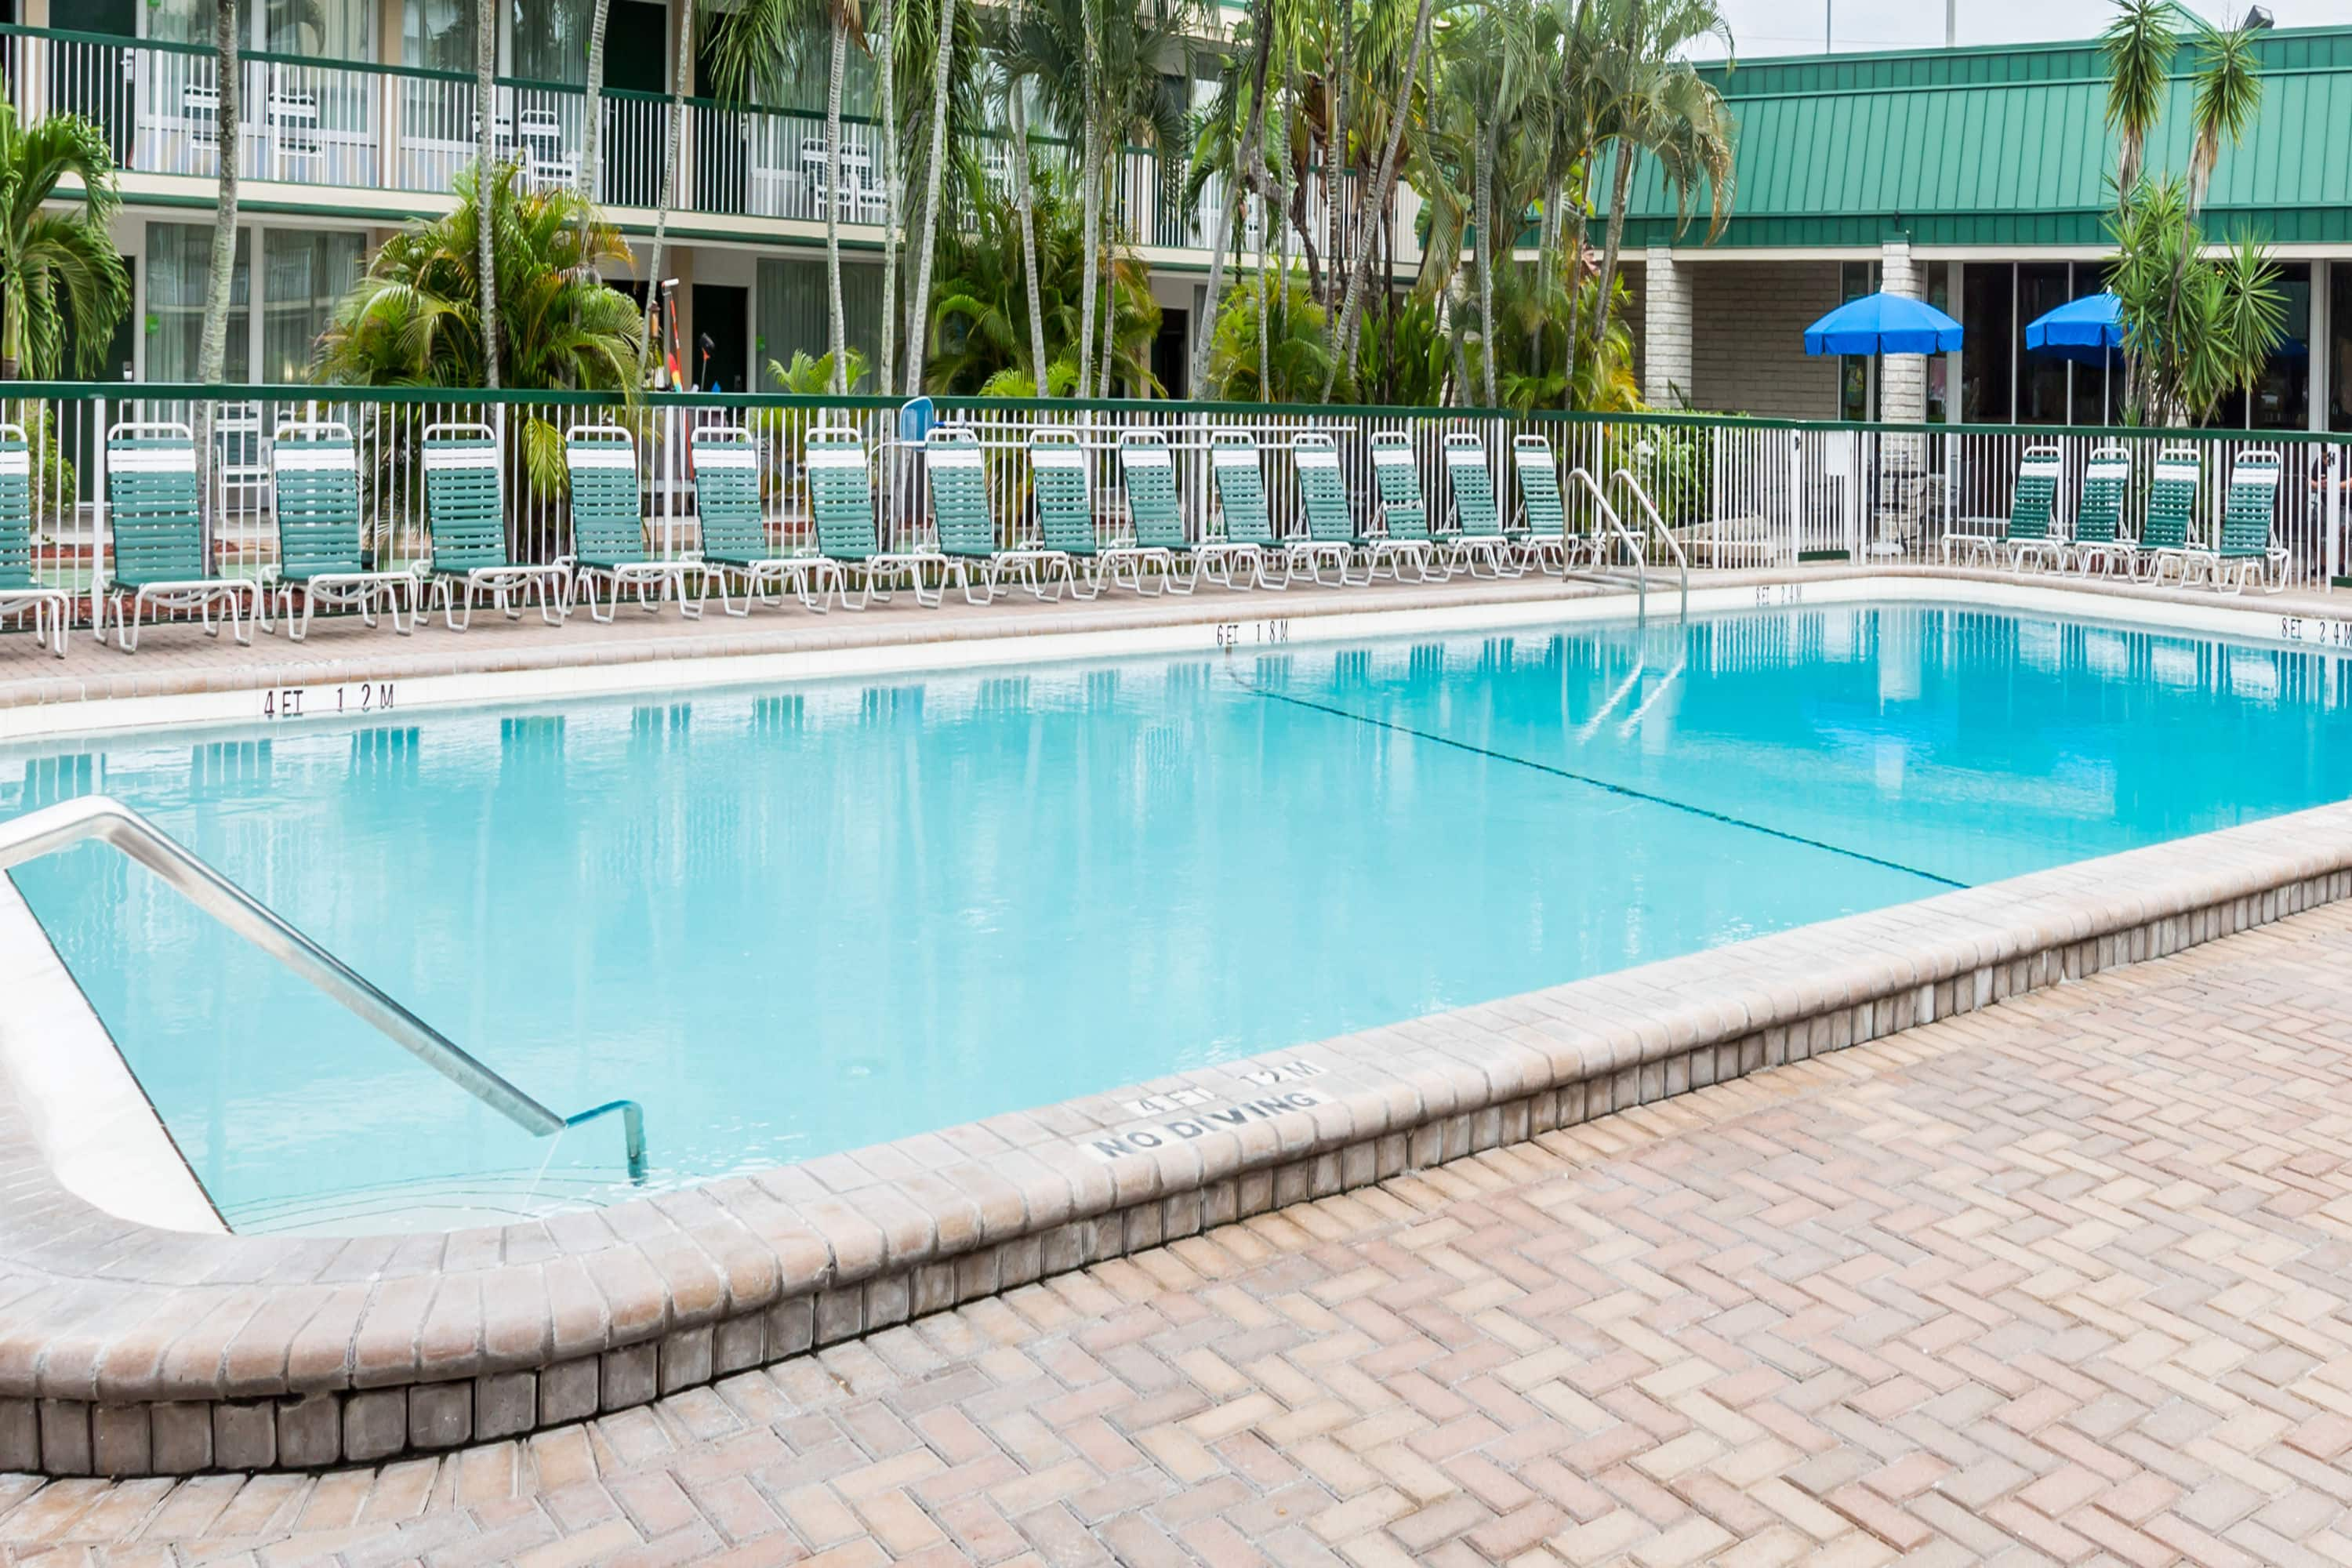 Wyndham Garden Fort Myers Beach Fort Myers Beach Hotels FL 33931